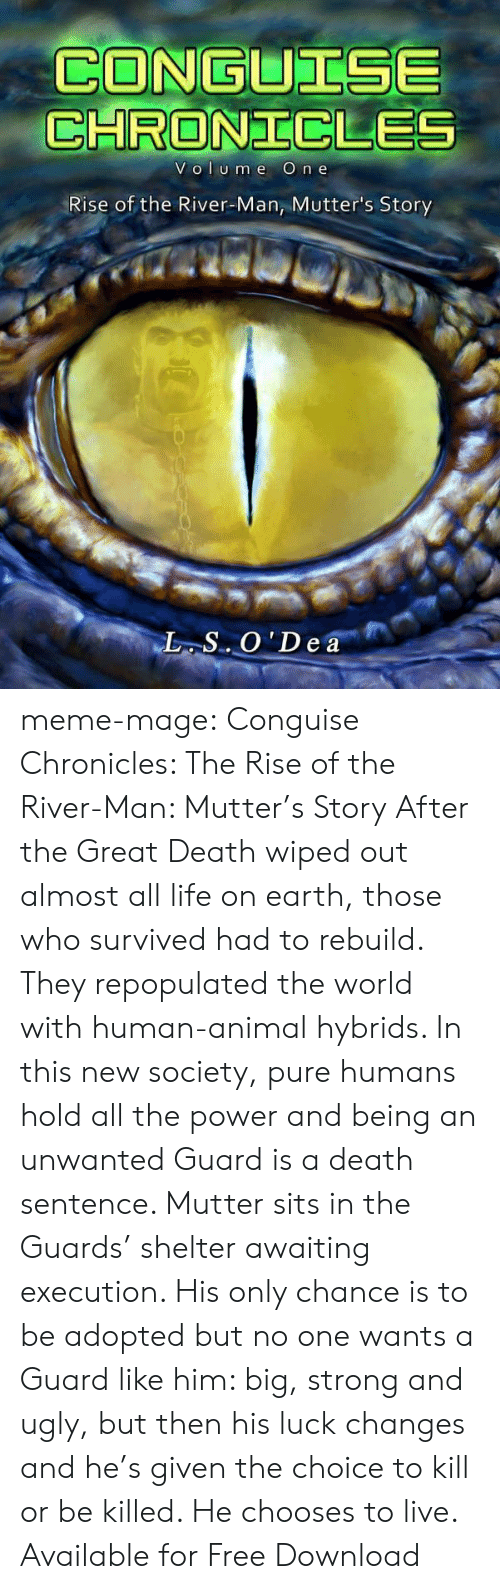 Amazon, Life, and Meme: CONGUTISE  CHRONICLE  VOI Ume O  n e  Rise of the River-Man, Mutter's Story meme-mage:    Conguise Chronicles: The Rise of the River-Man: Mutter's Story     After the Great Death wiped out almost all life on earth, those who survived had to rebuild. They repopulated the world with human-animal hybrids. In this new society, pure humans hold all the power and being an unwanted Guard is a death sentence. Mutter sits in the Guards' shelter awaiting execution. His only chance is to be adopted but no one wants a Guard like him: big, strong and ugly, but then his luck changes and he's given the choice to kill or be killed. He chooses to live.      Available for Free Download